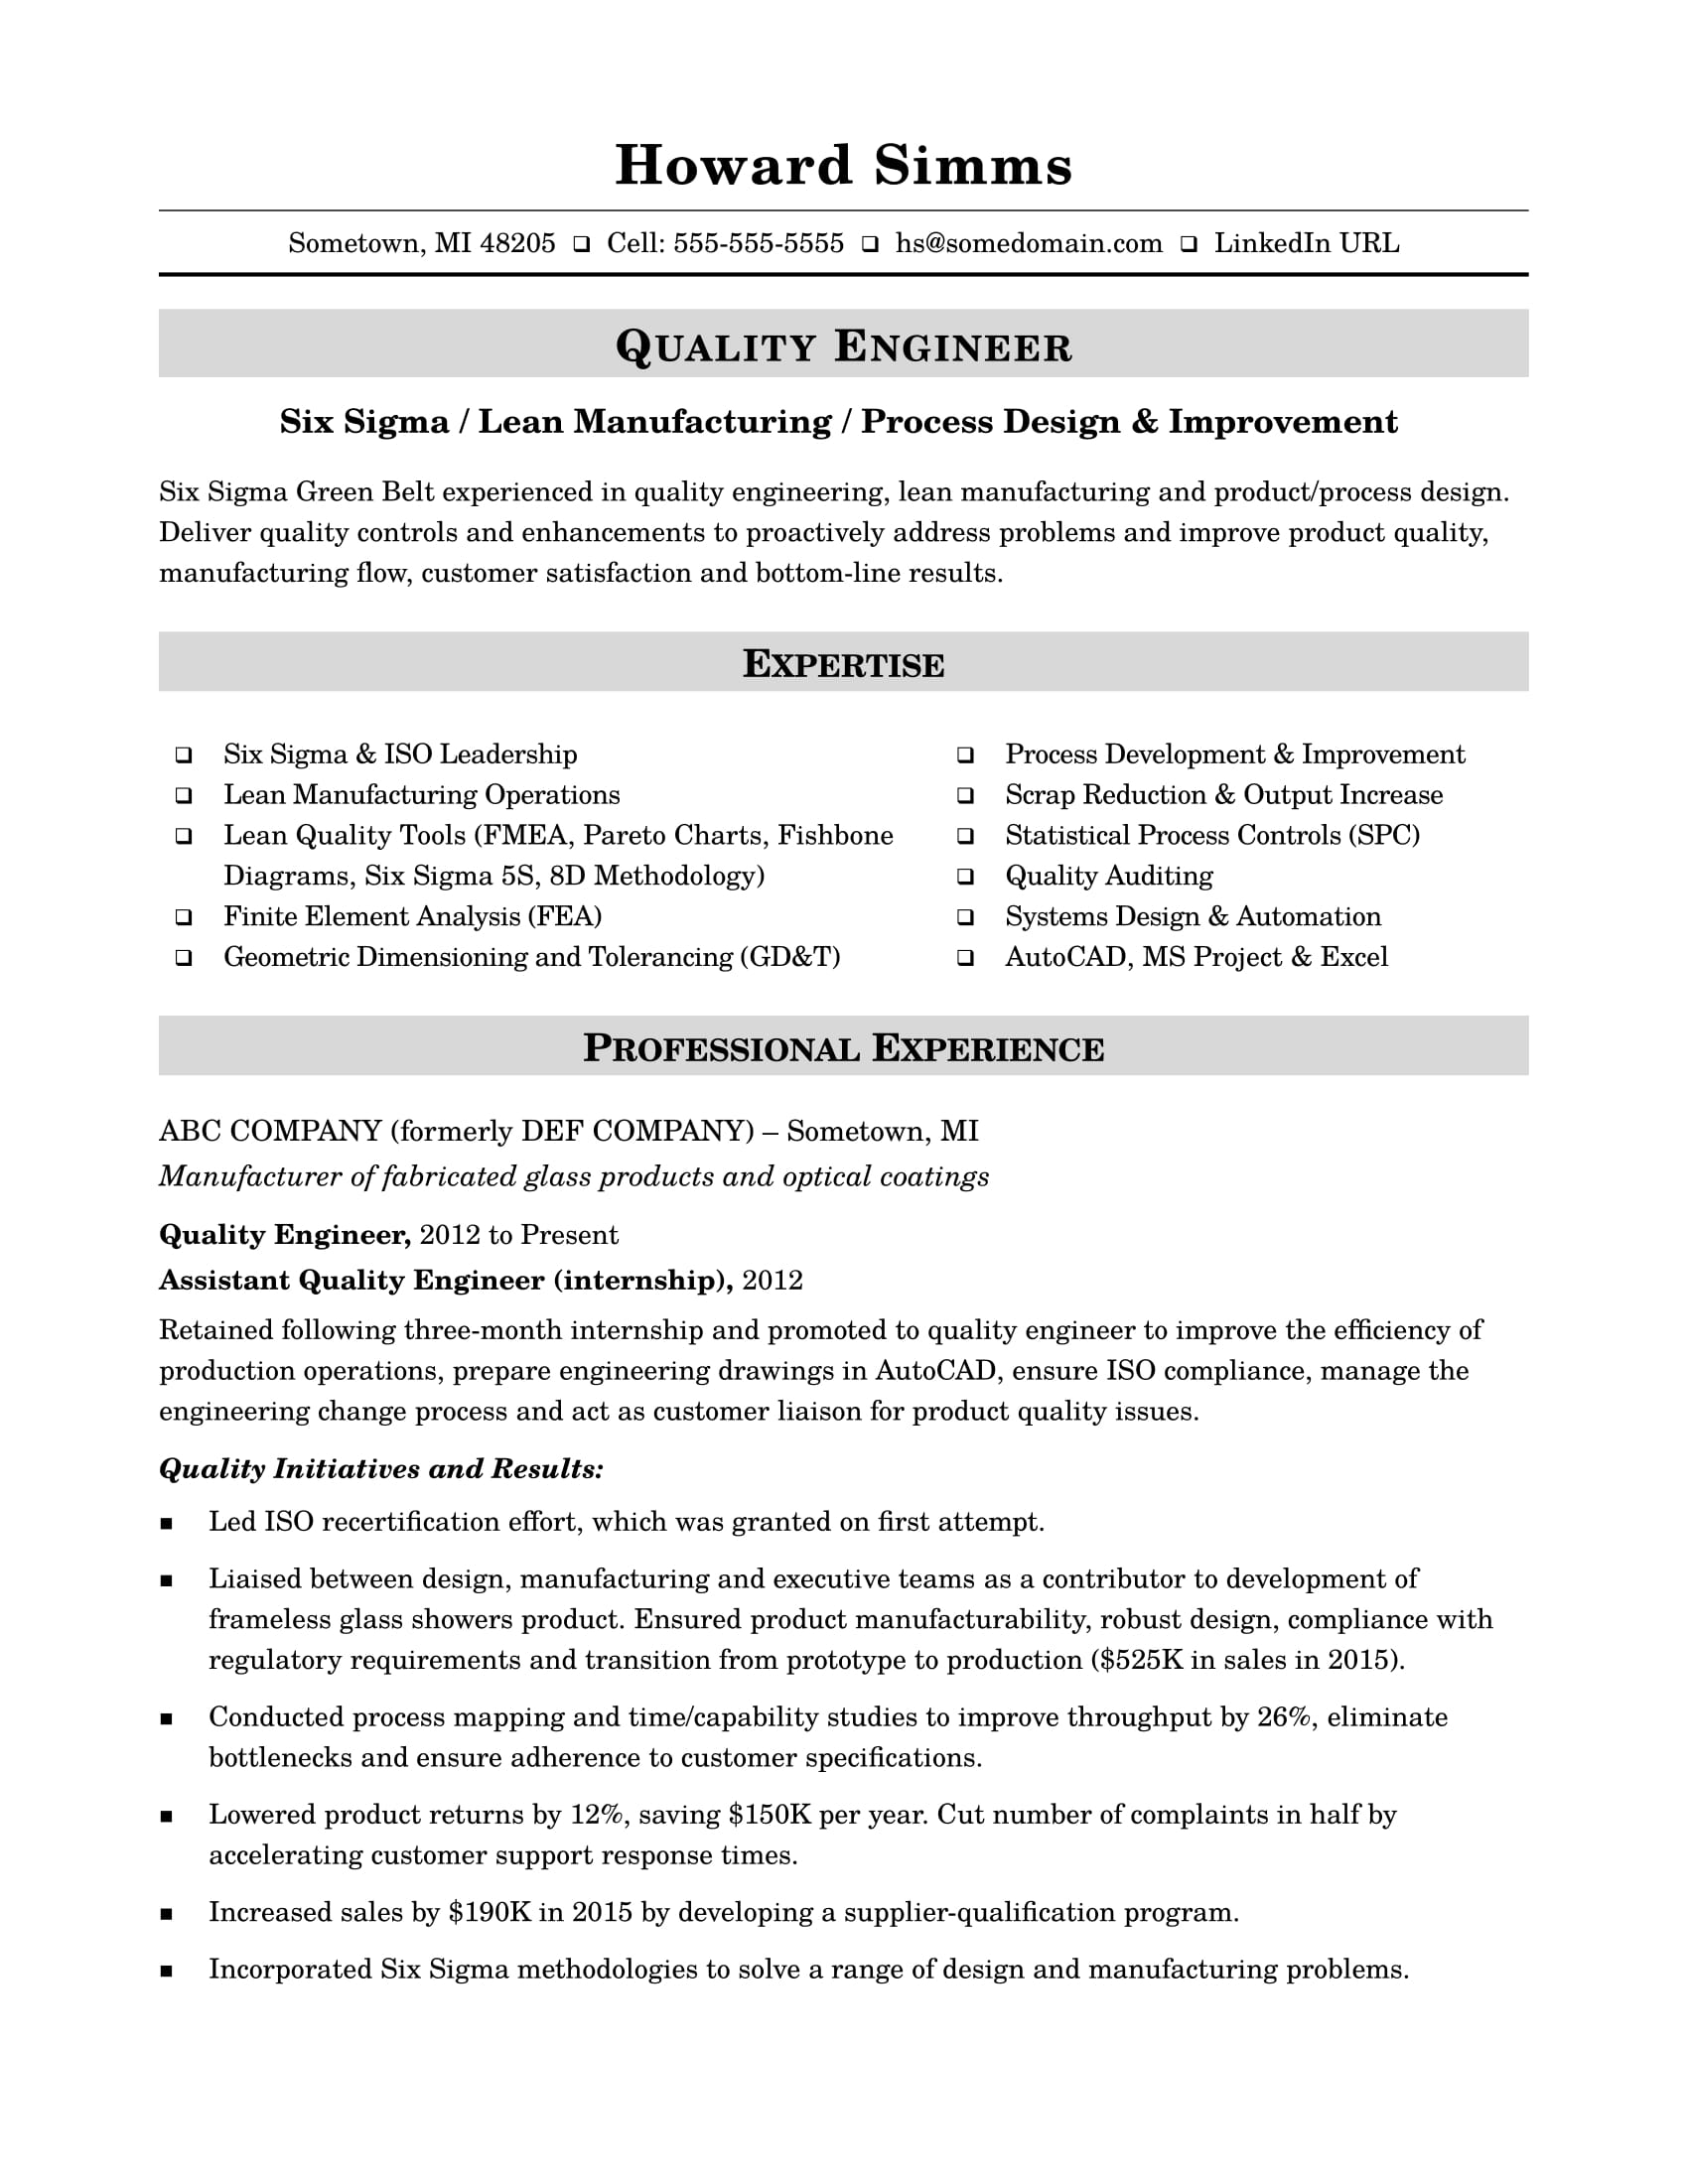 Sample Resume For A Midlevel Quality Engineer  Reliability Engineer Resume